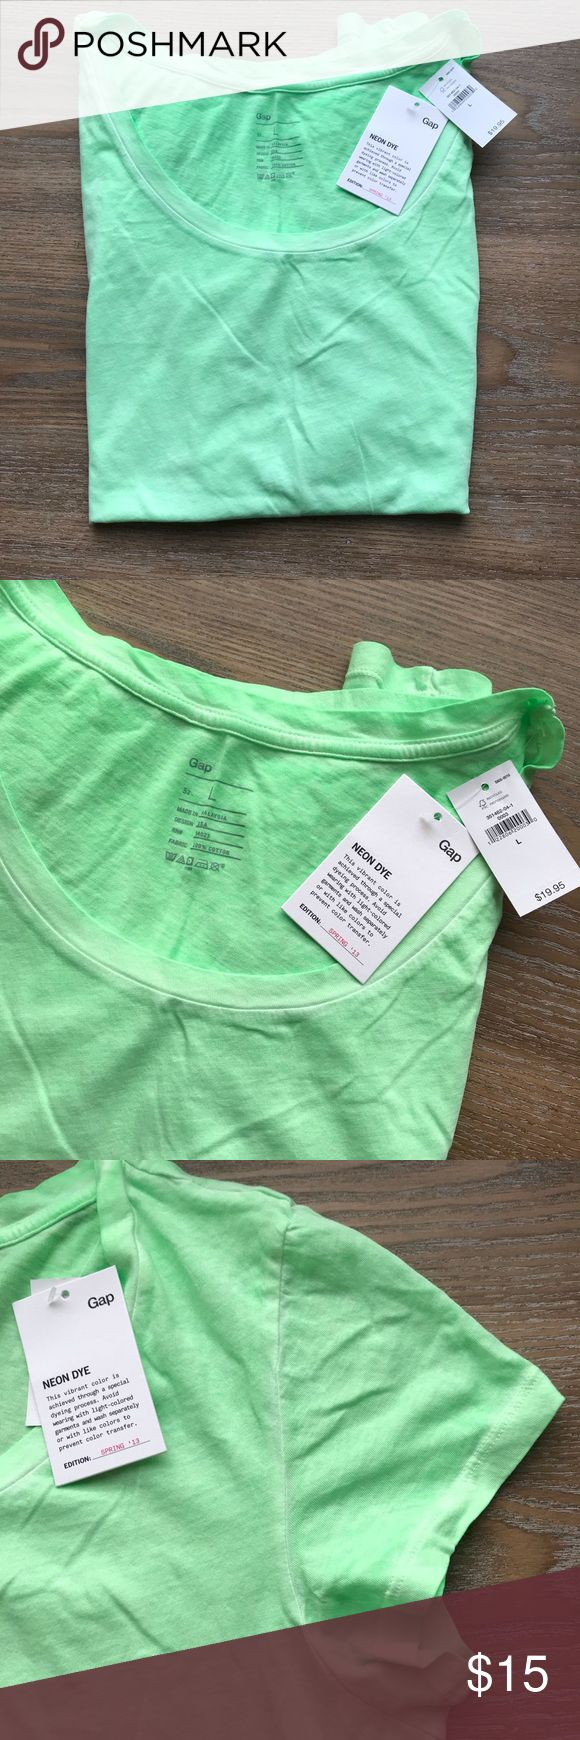 NWT Gap Neon Green Scoop Neck Tee Vibrant green scoop neck t-shirt. Neon color achieved by unique dyeing process. Short sleeves. Soft, comfortable 100% cotton. GAP Tops Tees - Short Sleeve